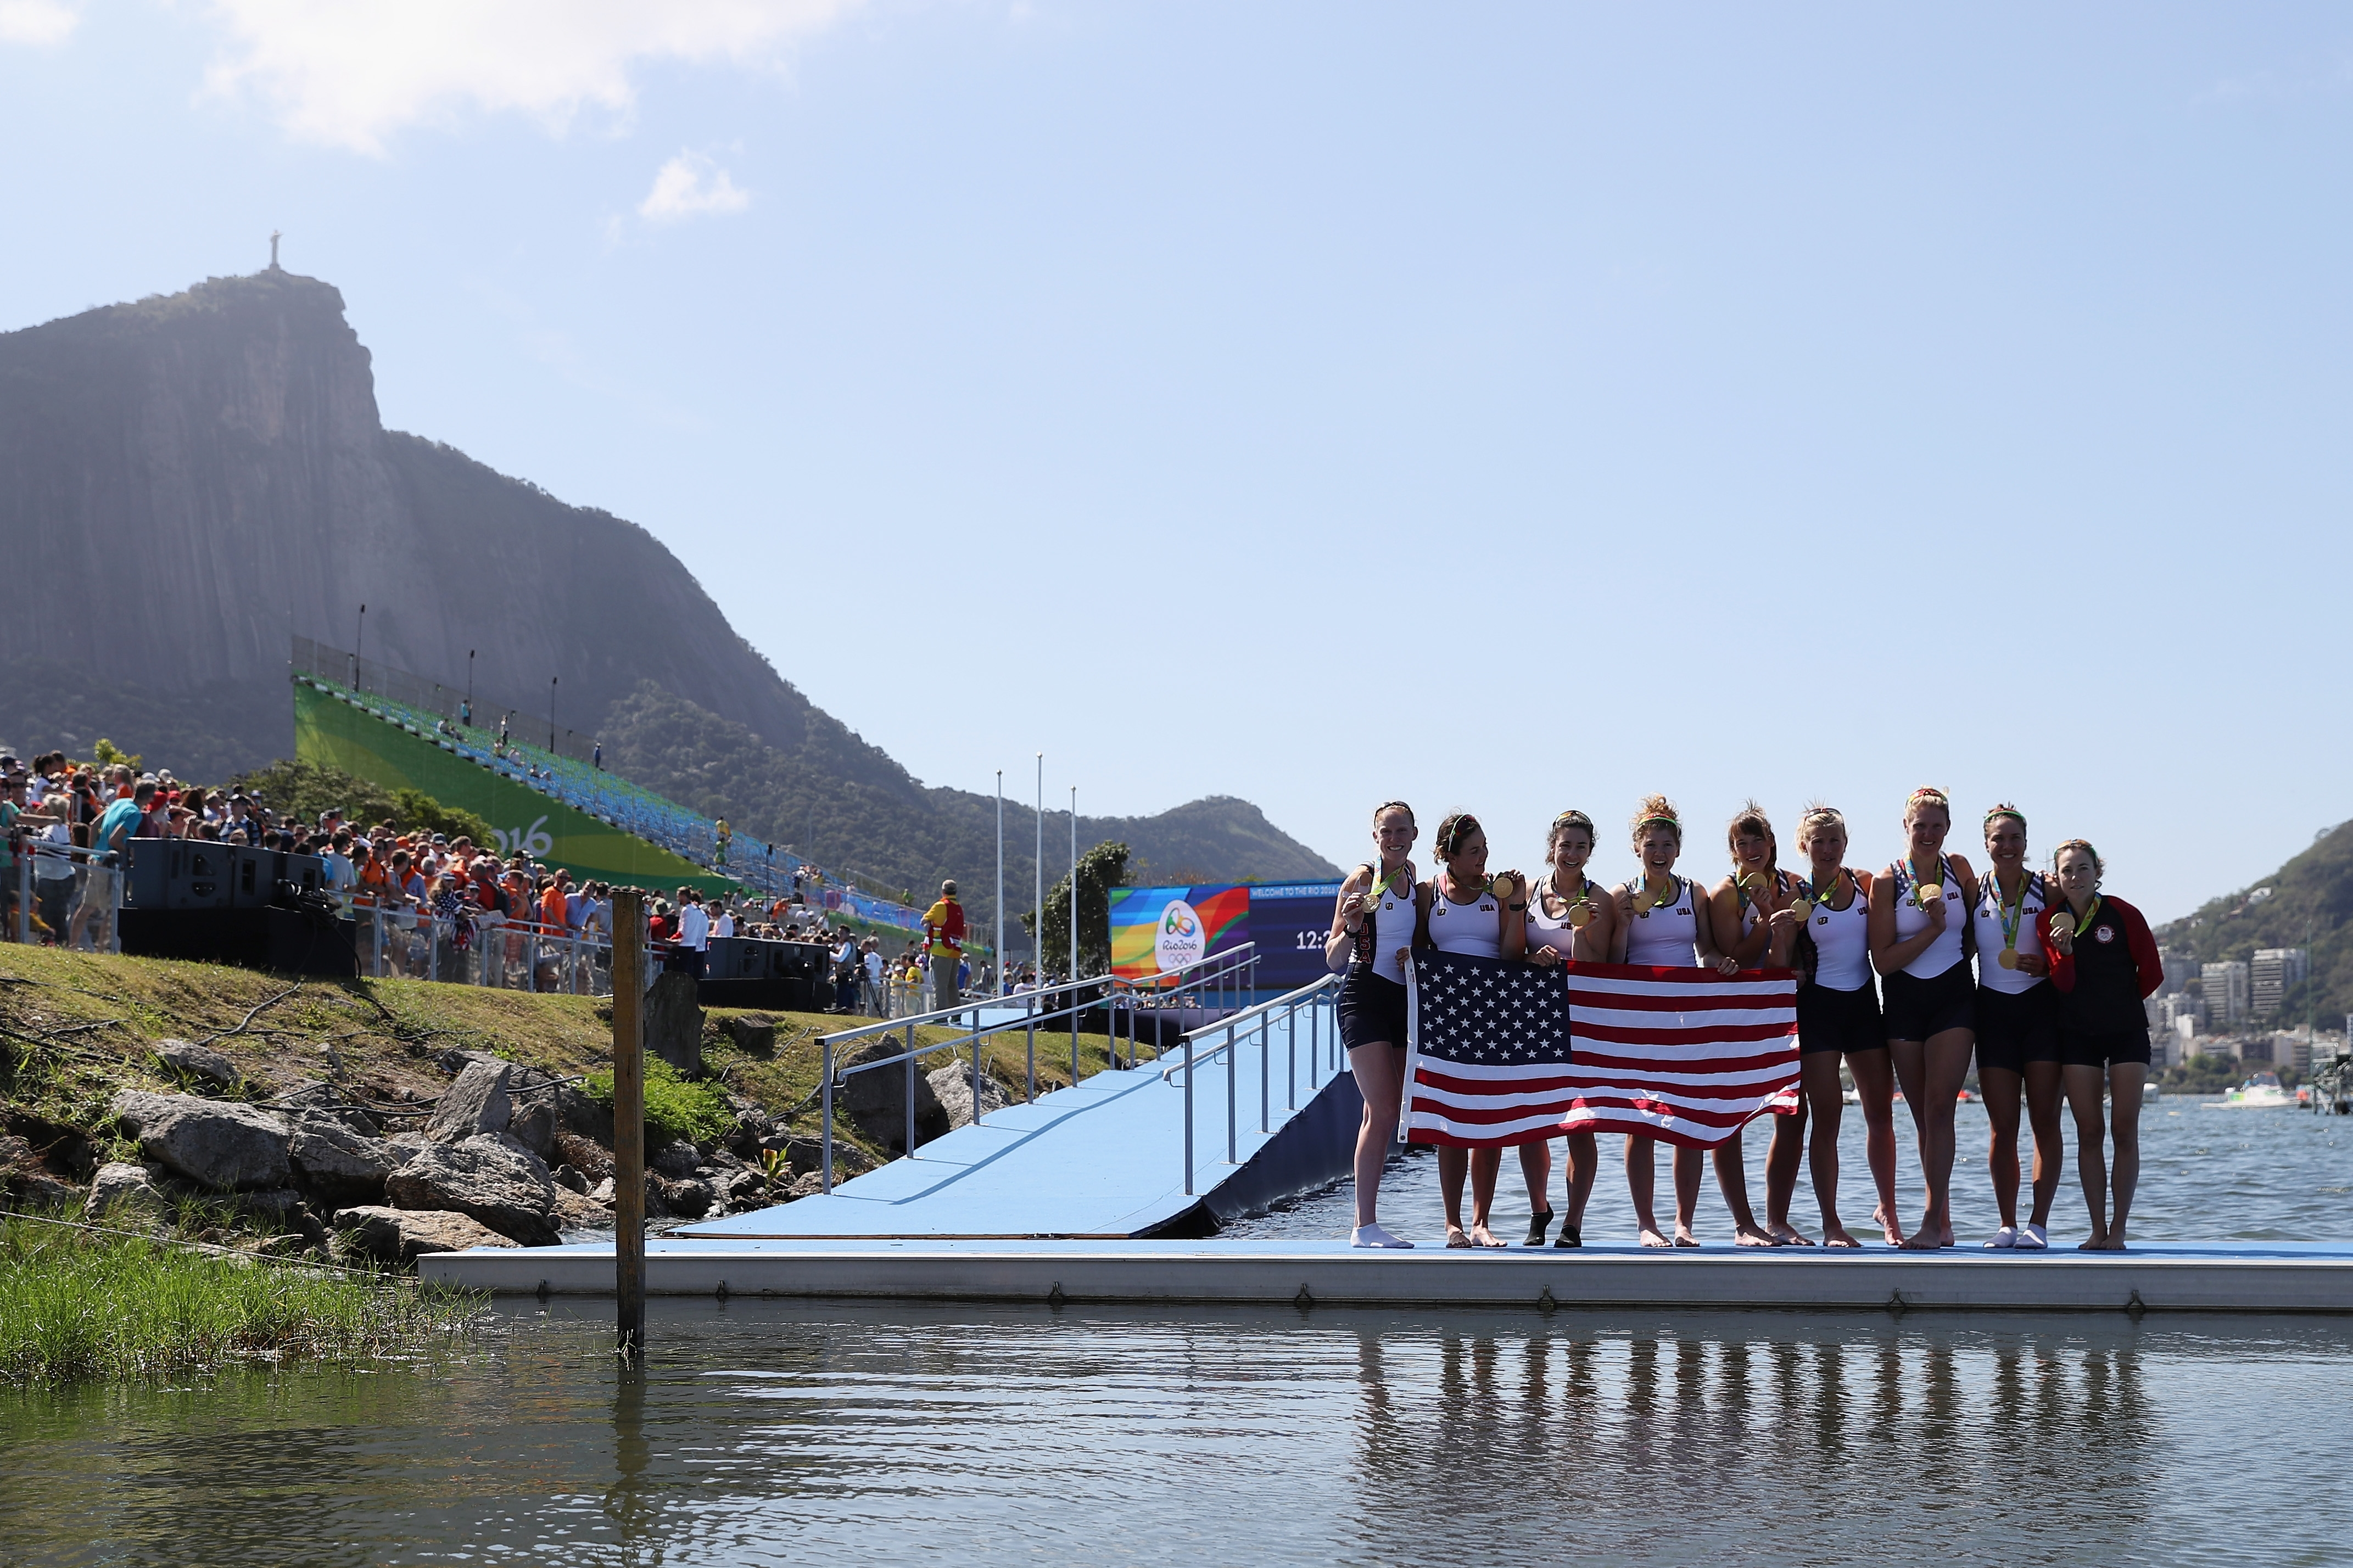 With Christ the Redeemer high above, Buffalo's Emily Regan (far left) and her U.S. women's eight rowing teammates posed with their gold medals at the Rio Olympics. (Getty Images)